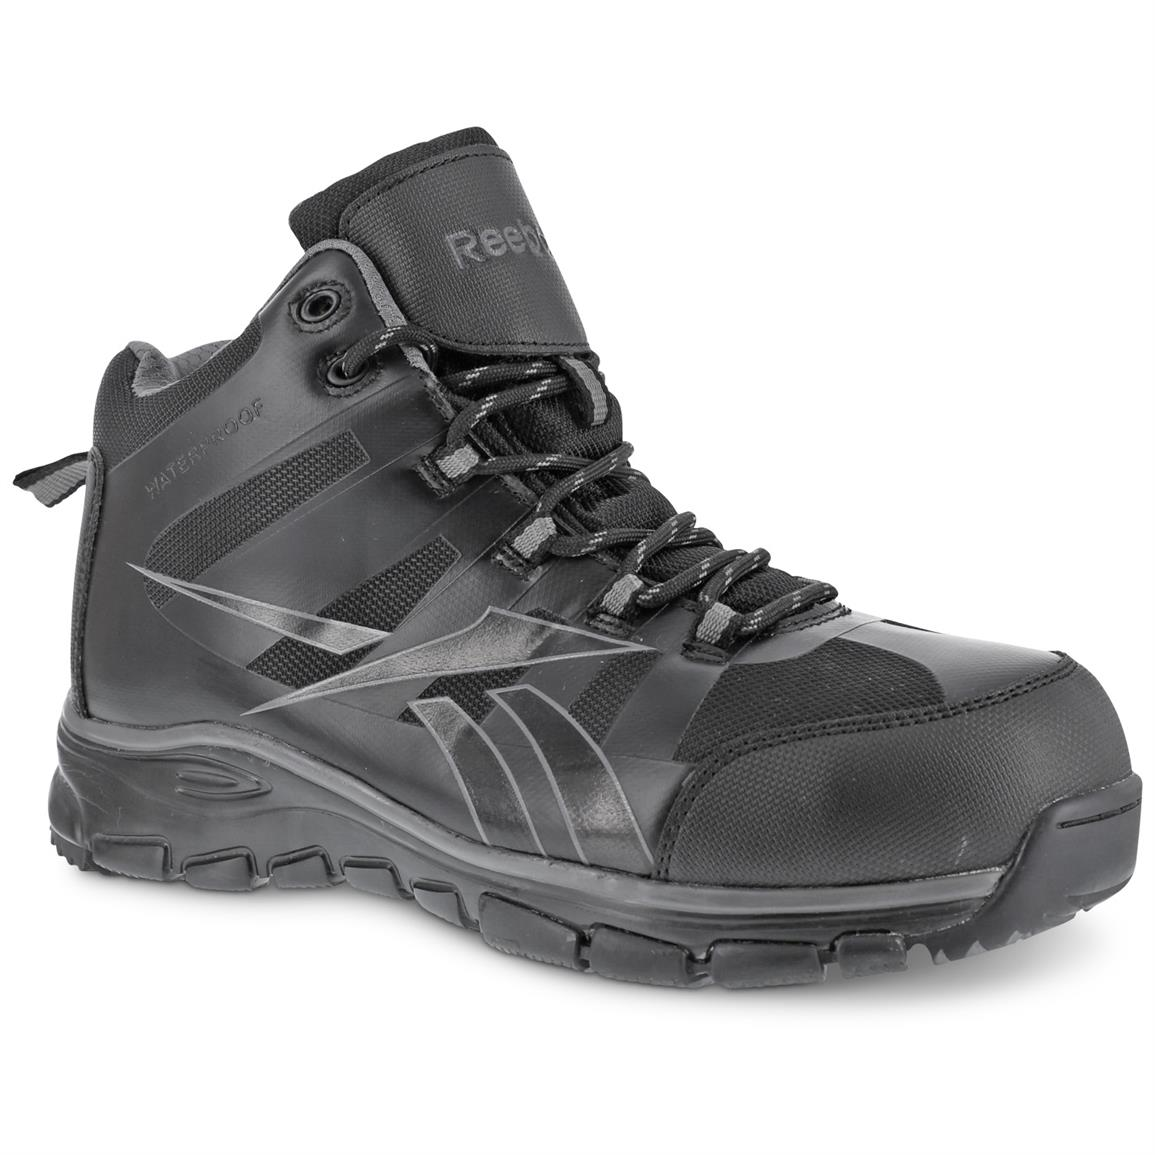 Reebok Men's Arion Composite Toe Waterproof Hiking Boots, Black